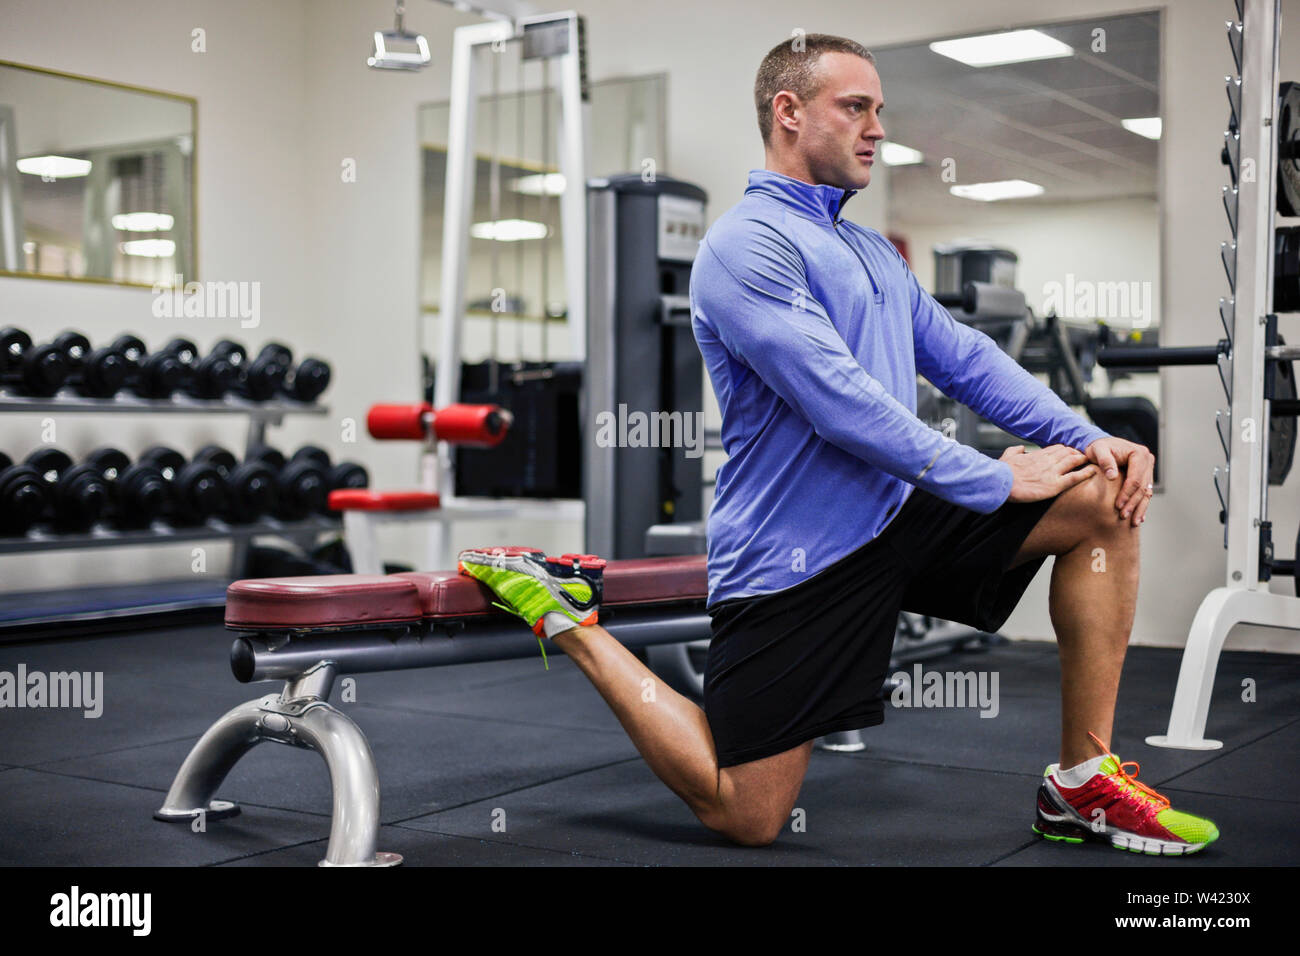 Amazing Healthy Trainer Work Outs To Legs On Bench Inside Room Of A Gmtry Best Dining Table And Chair Ideas Images Gmtryco